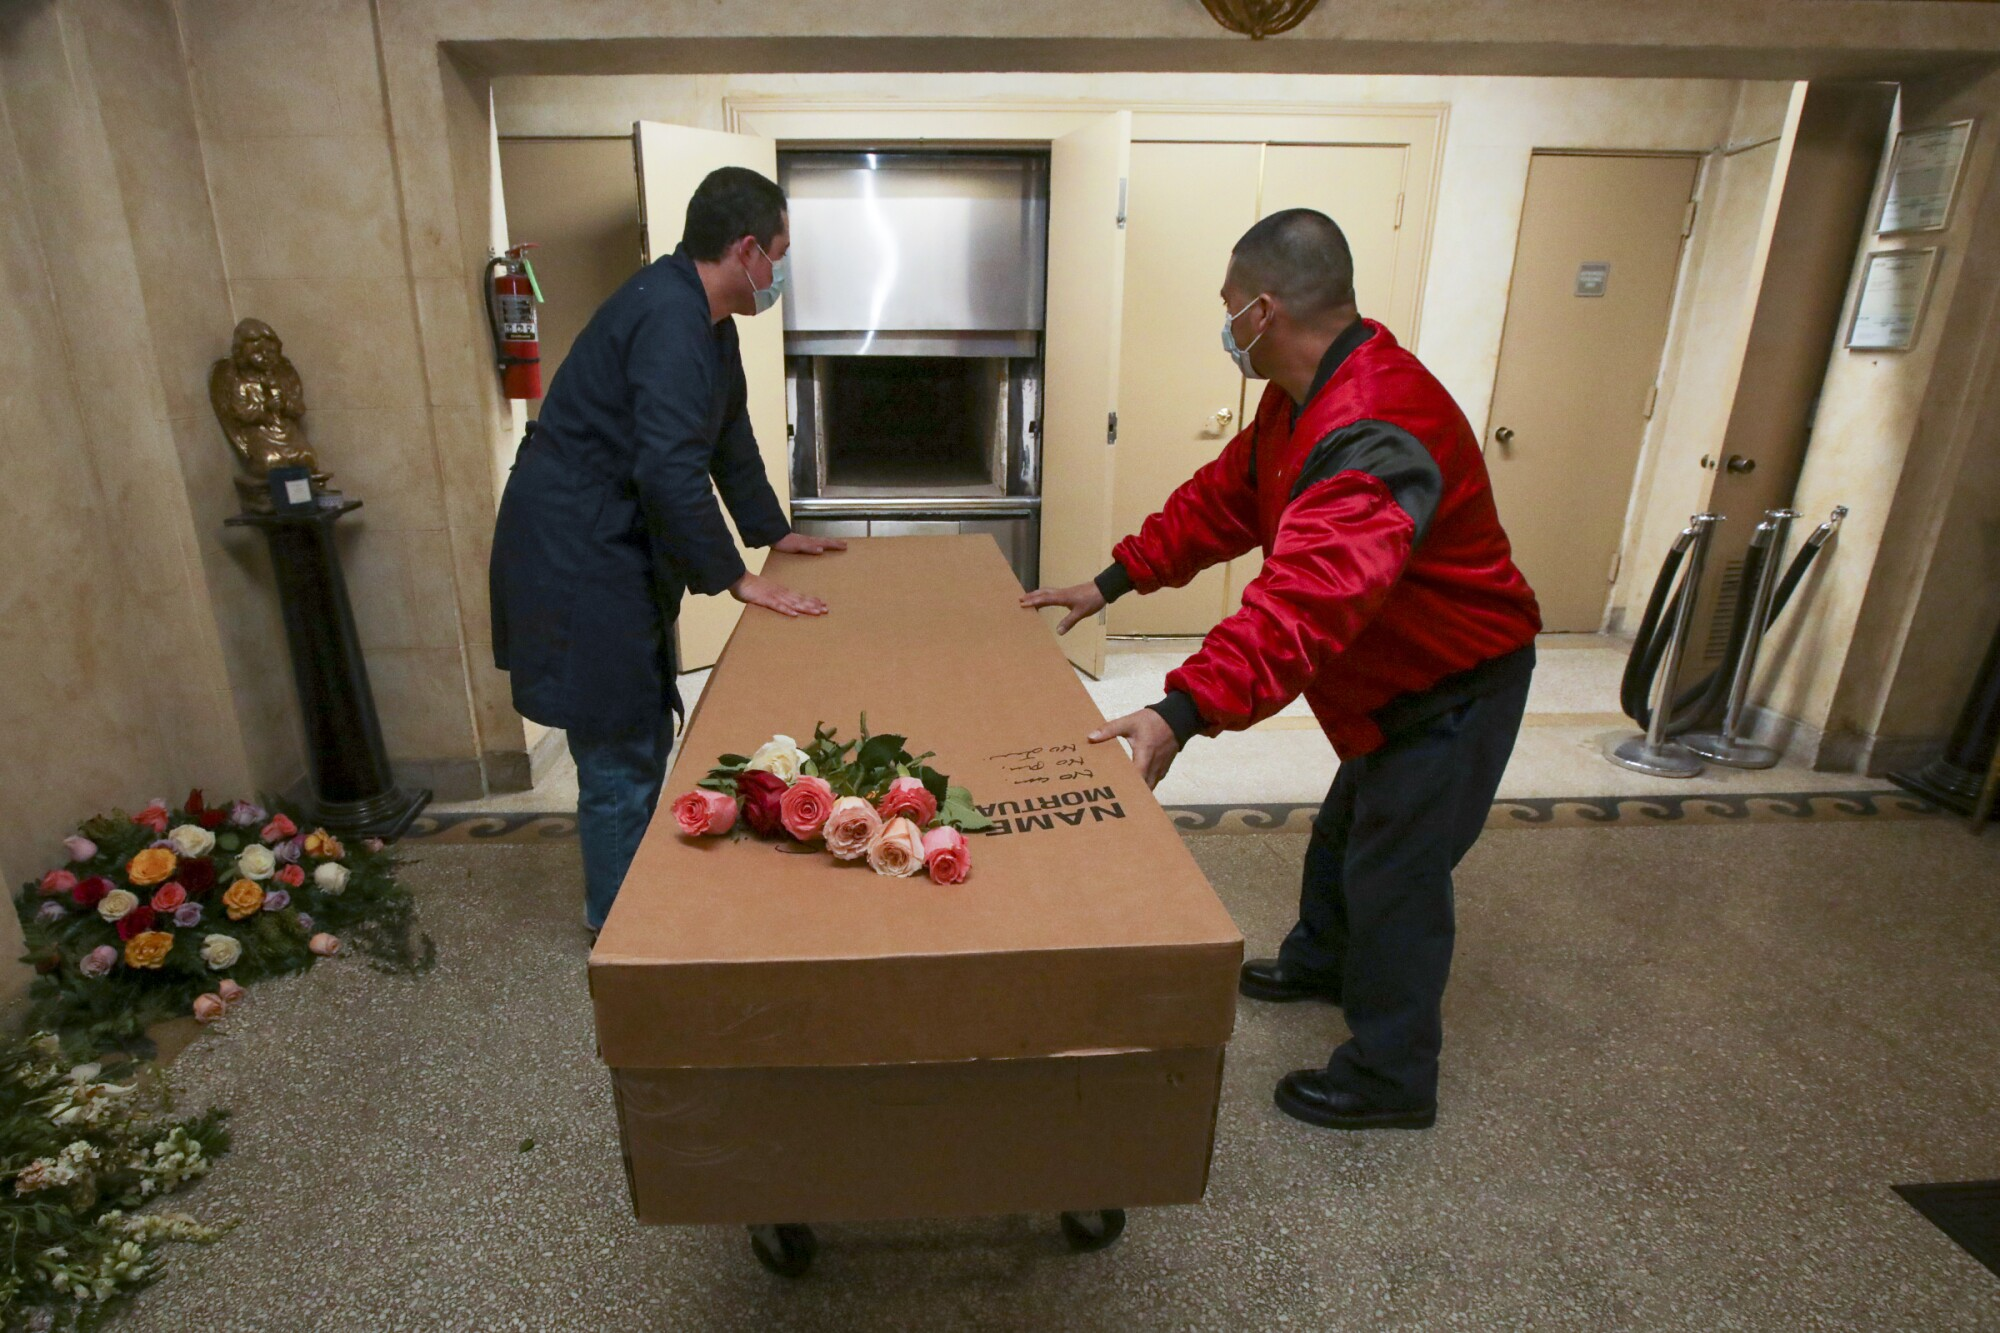 A pair of workers handle a cardboard container topped with roses